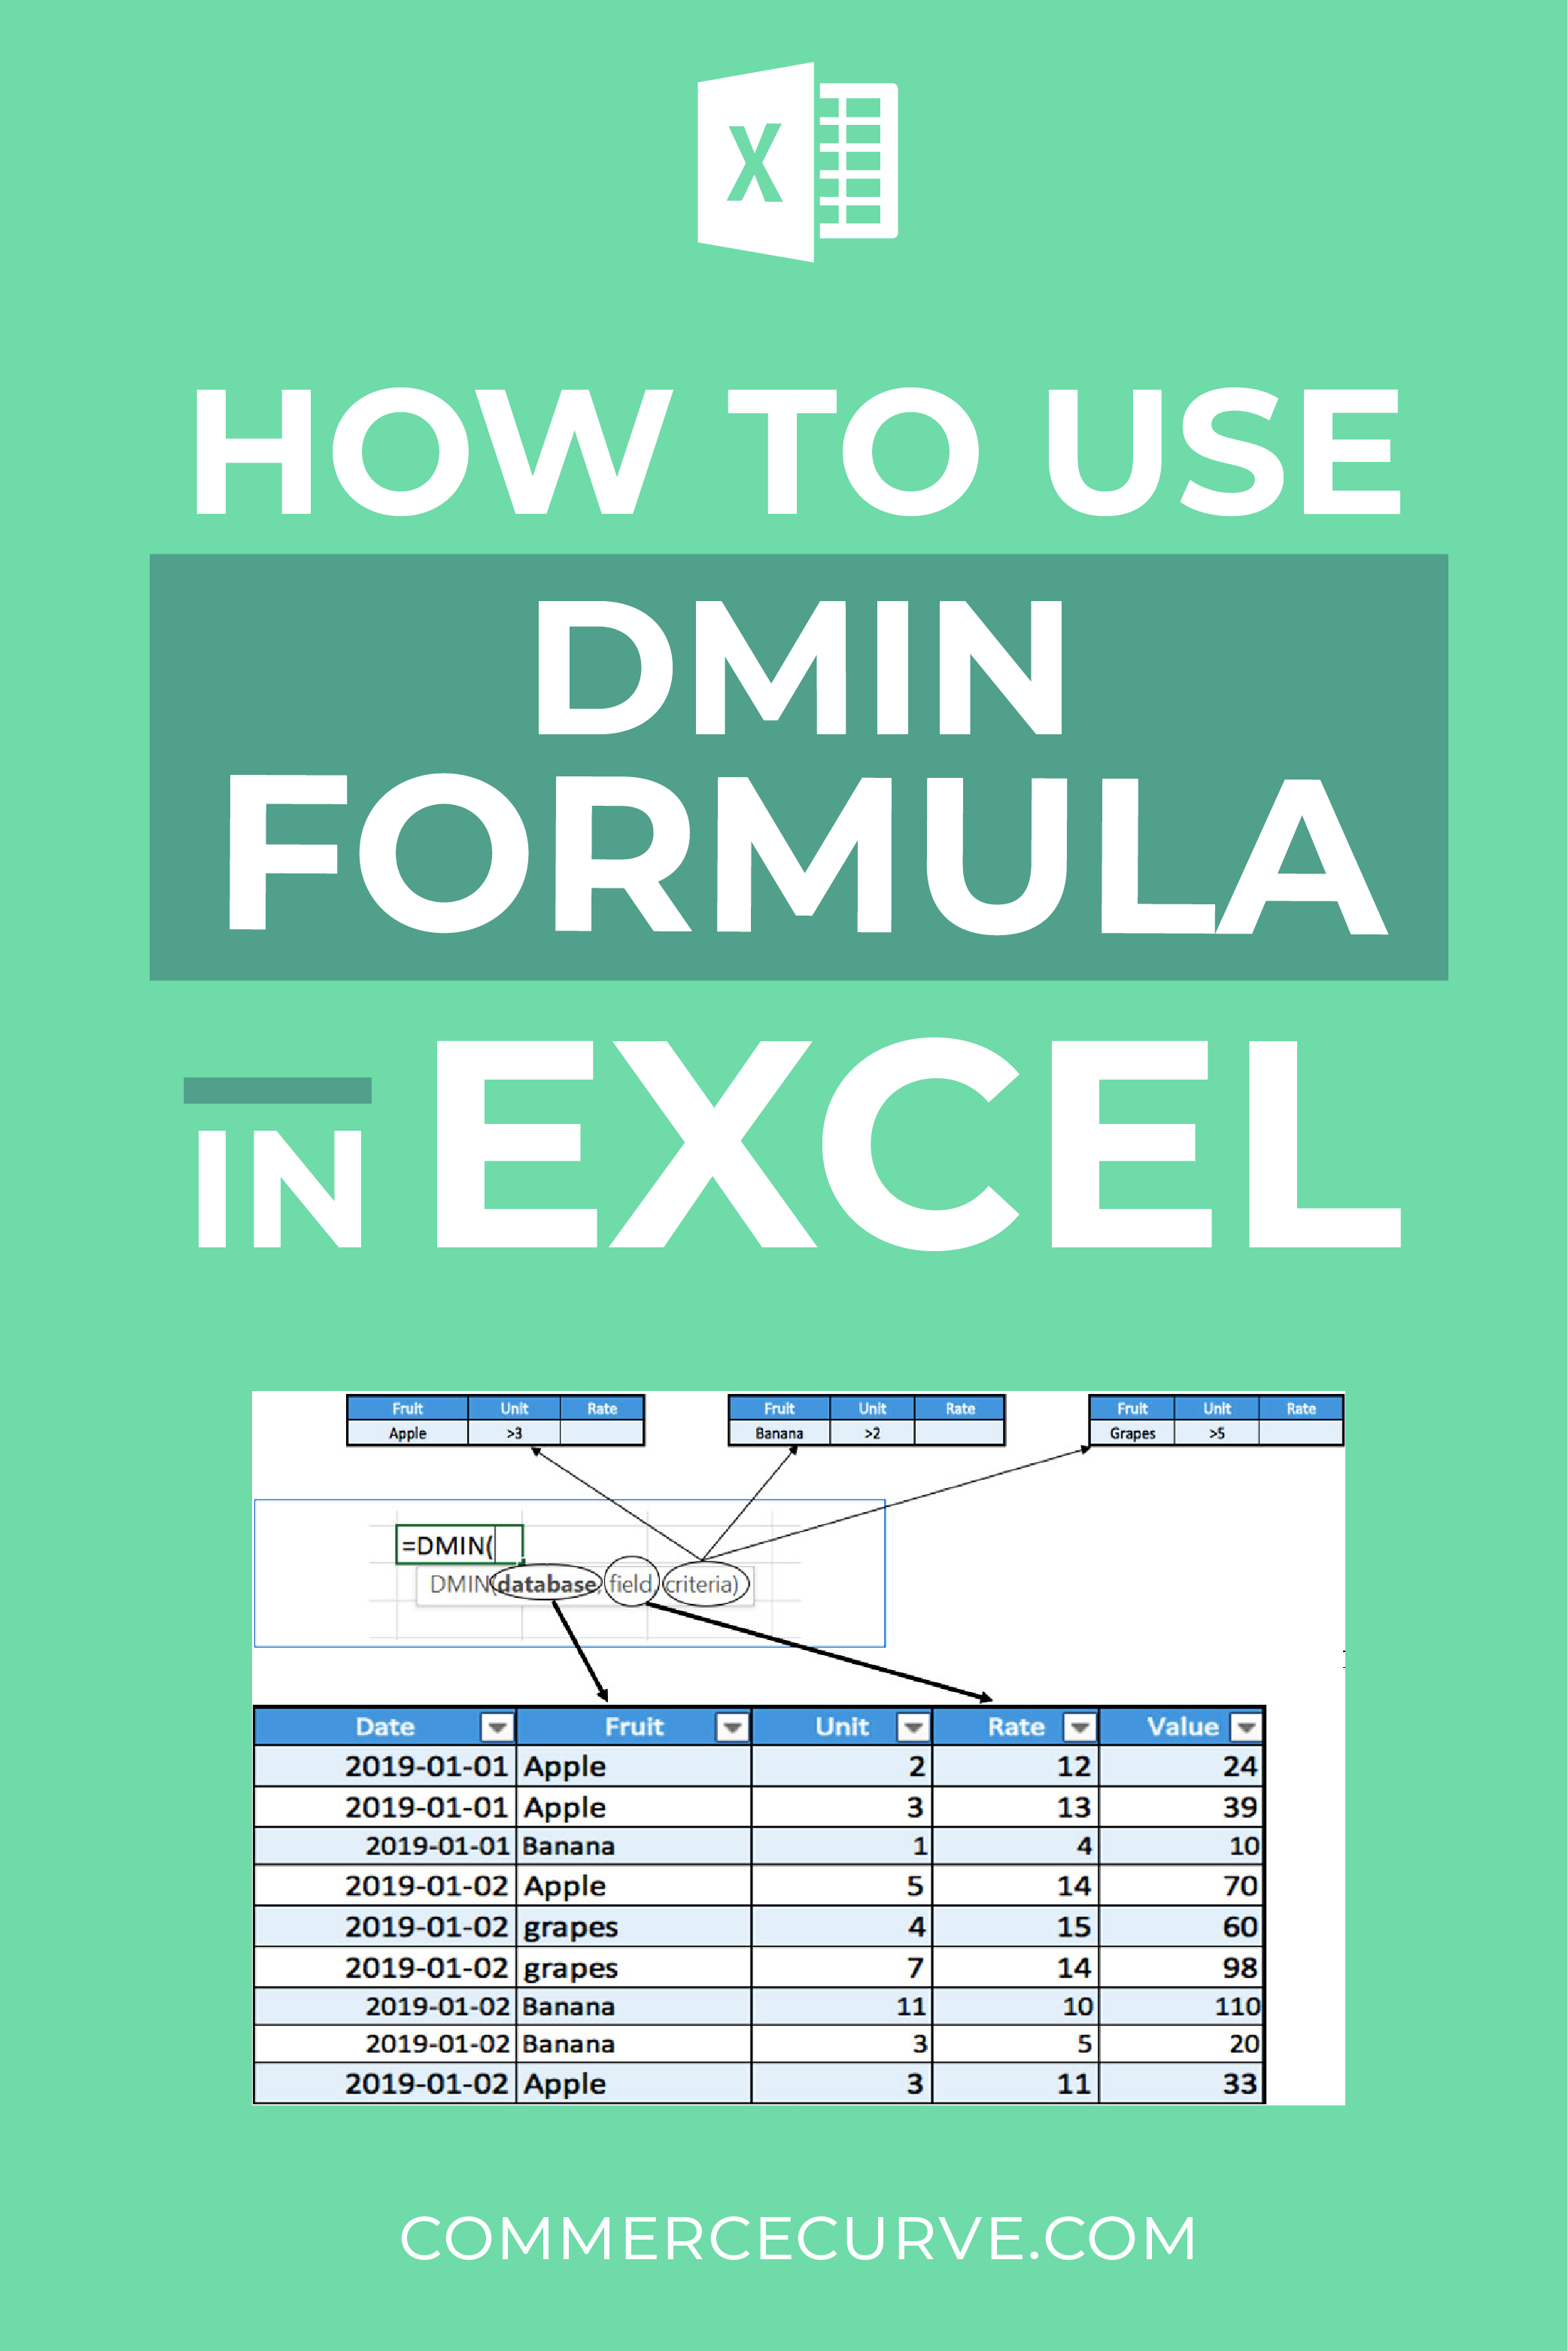 How To Use Dmin Formula In Excel In